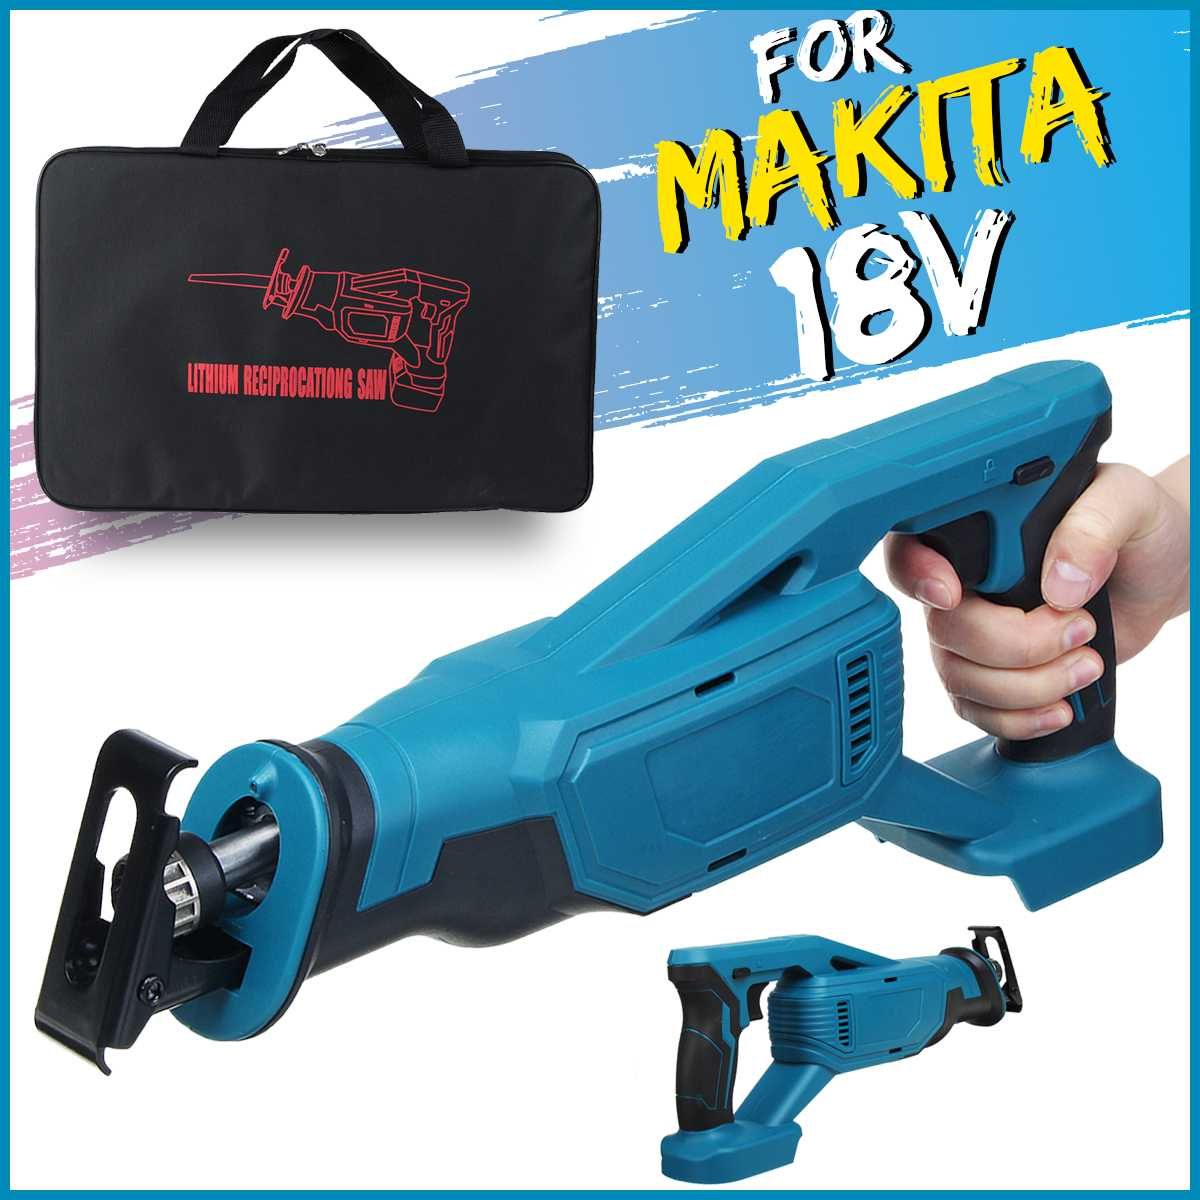 32mm Electric Cordless Reciprocating Saw Body Power Tool Woodworking Metal Cutting Electric Saw for Makita Battery 18V